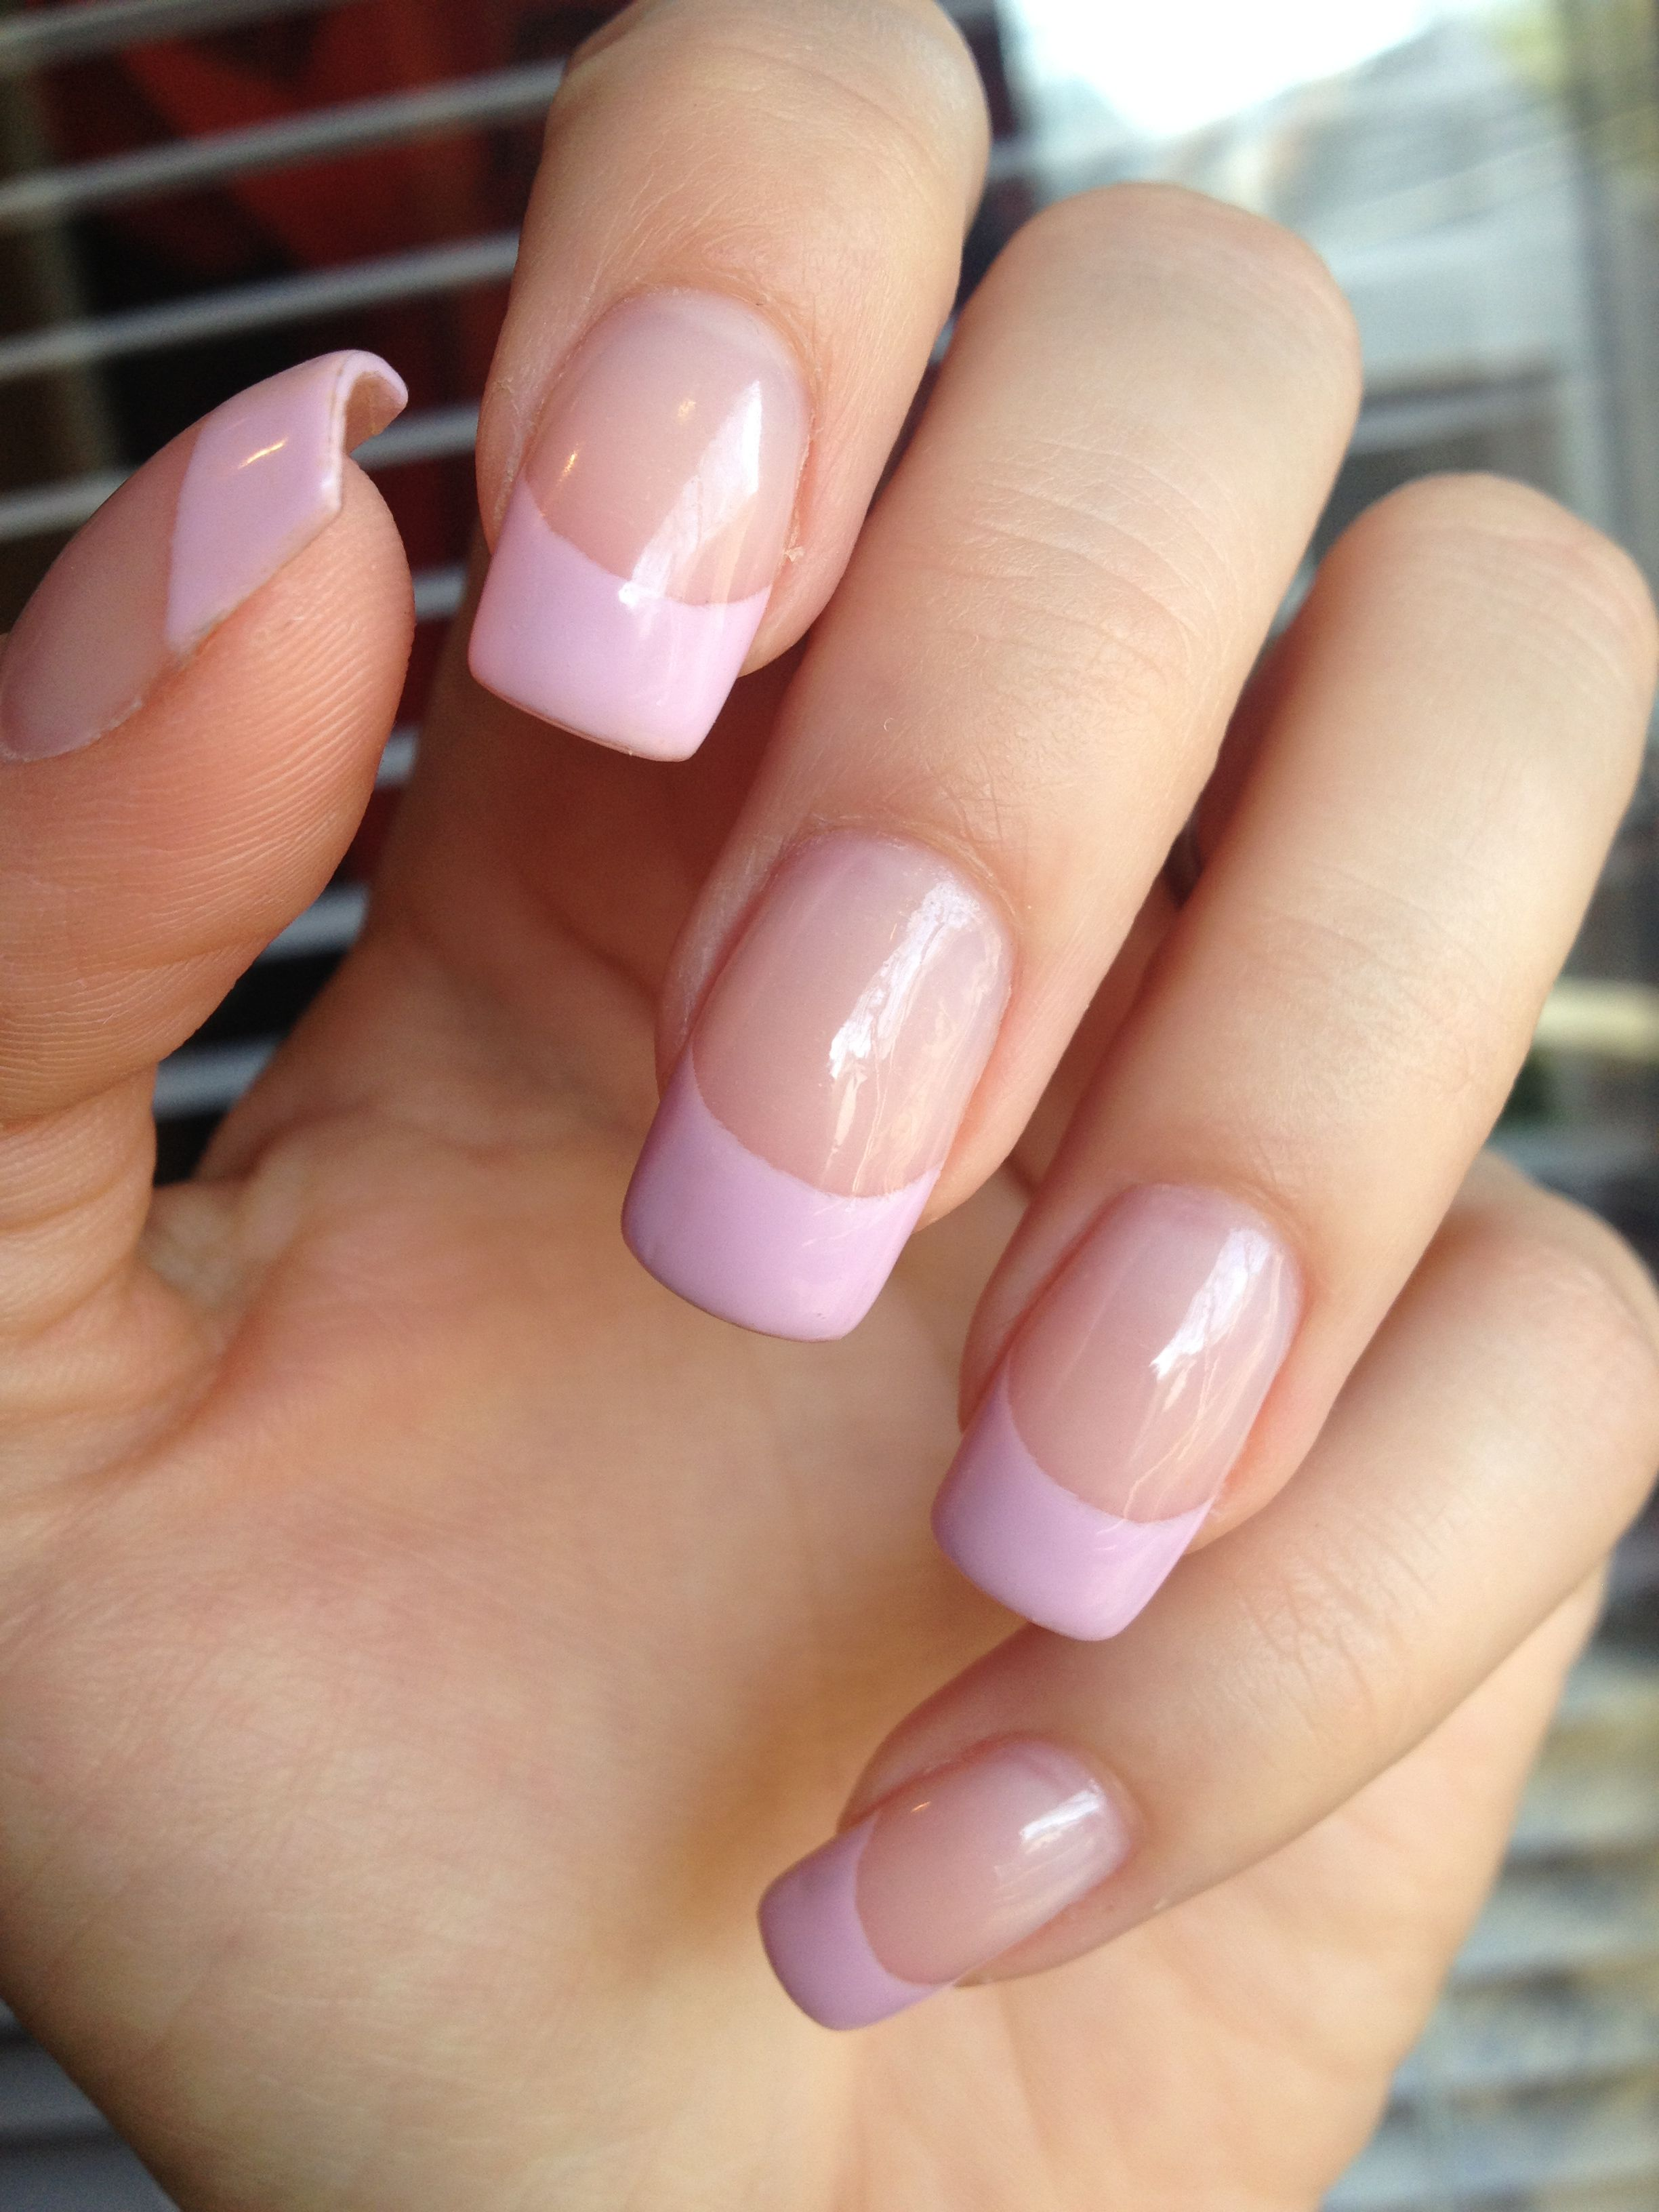 Pink French Manicure With Images French Manicure Nails French